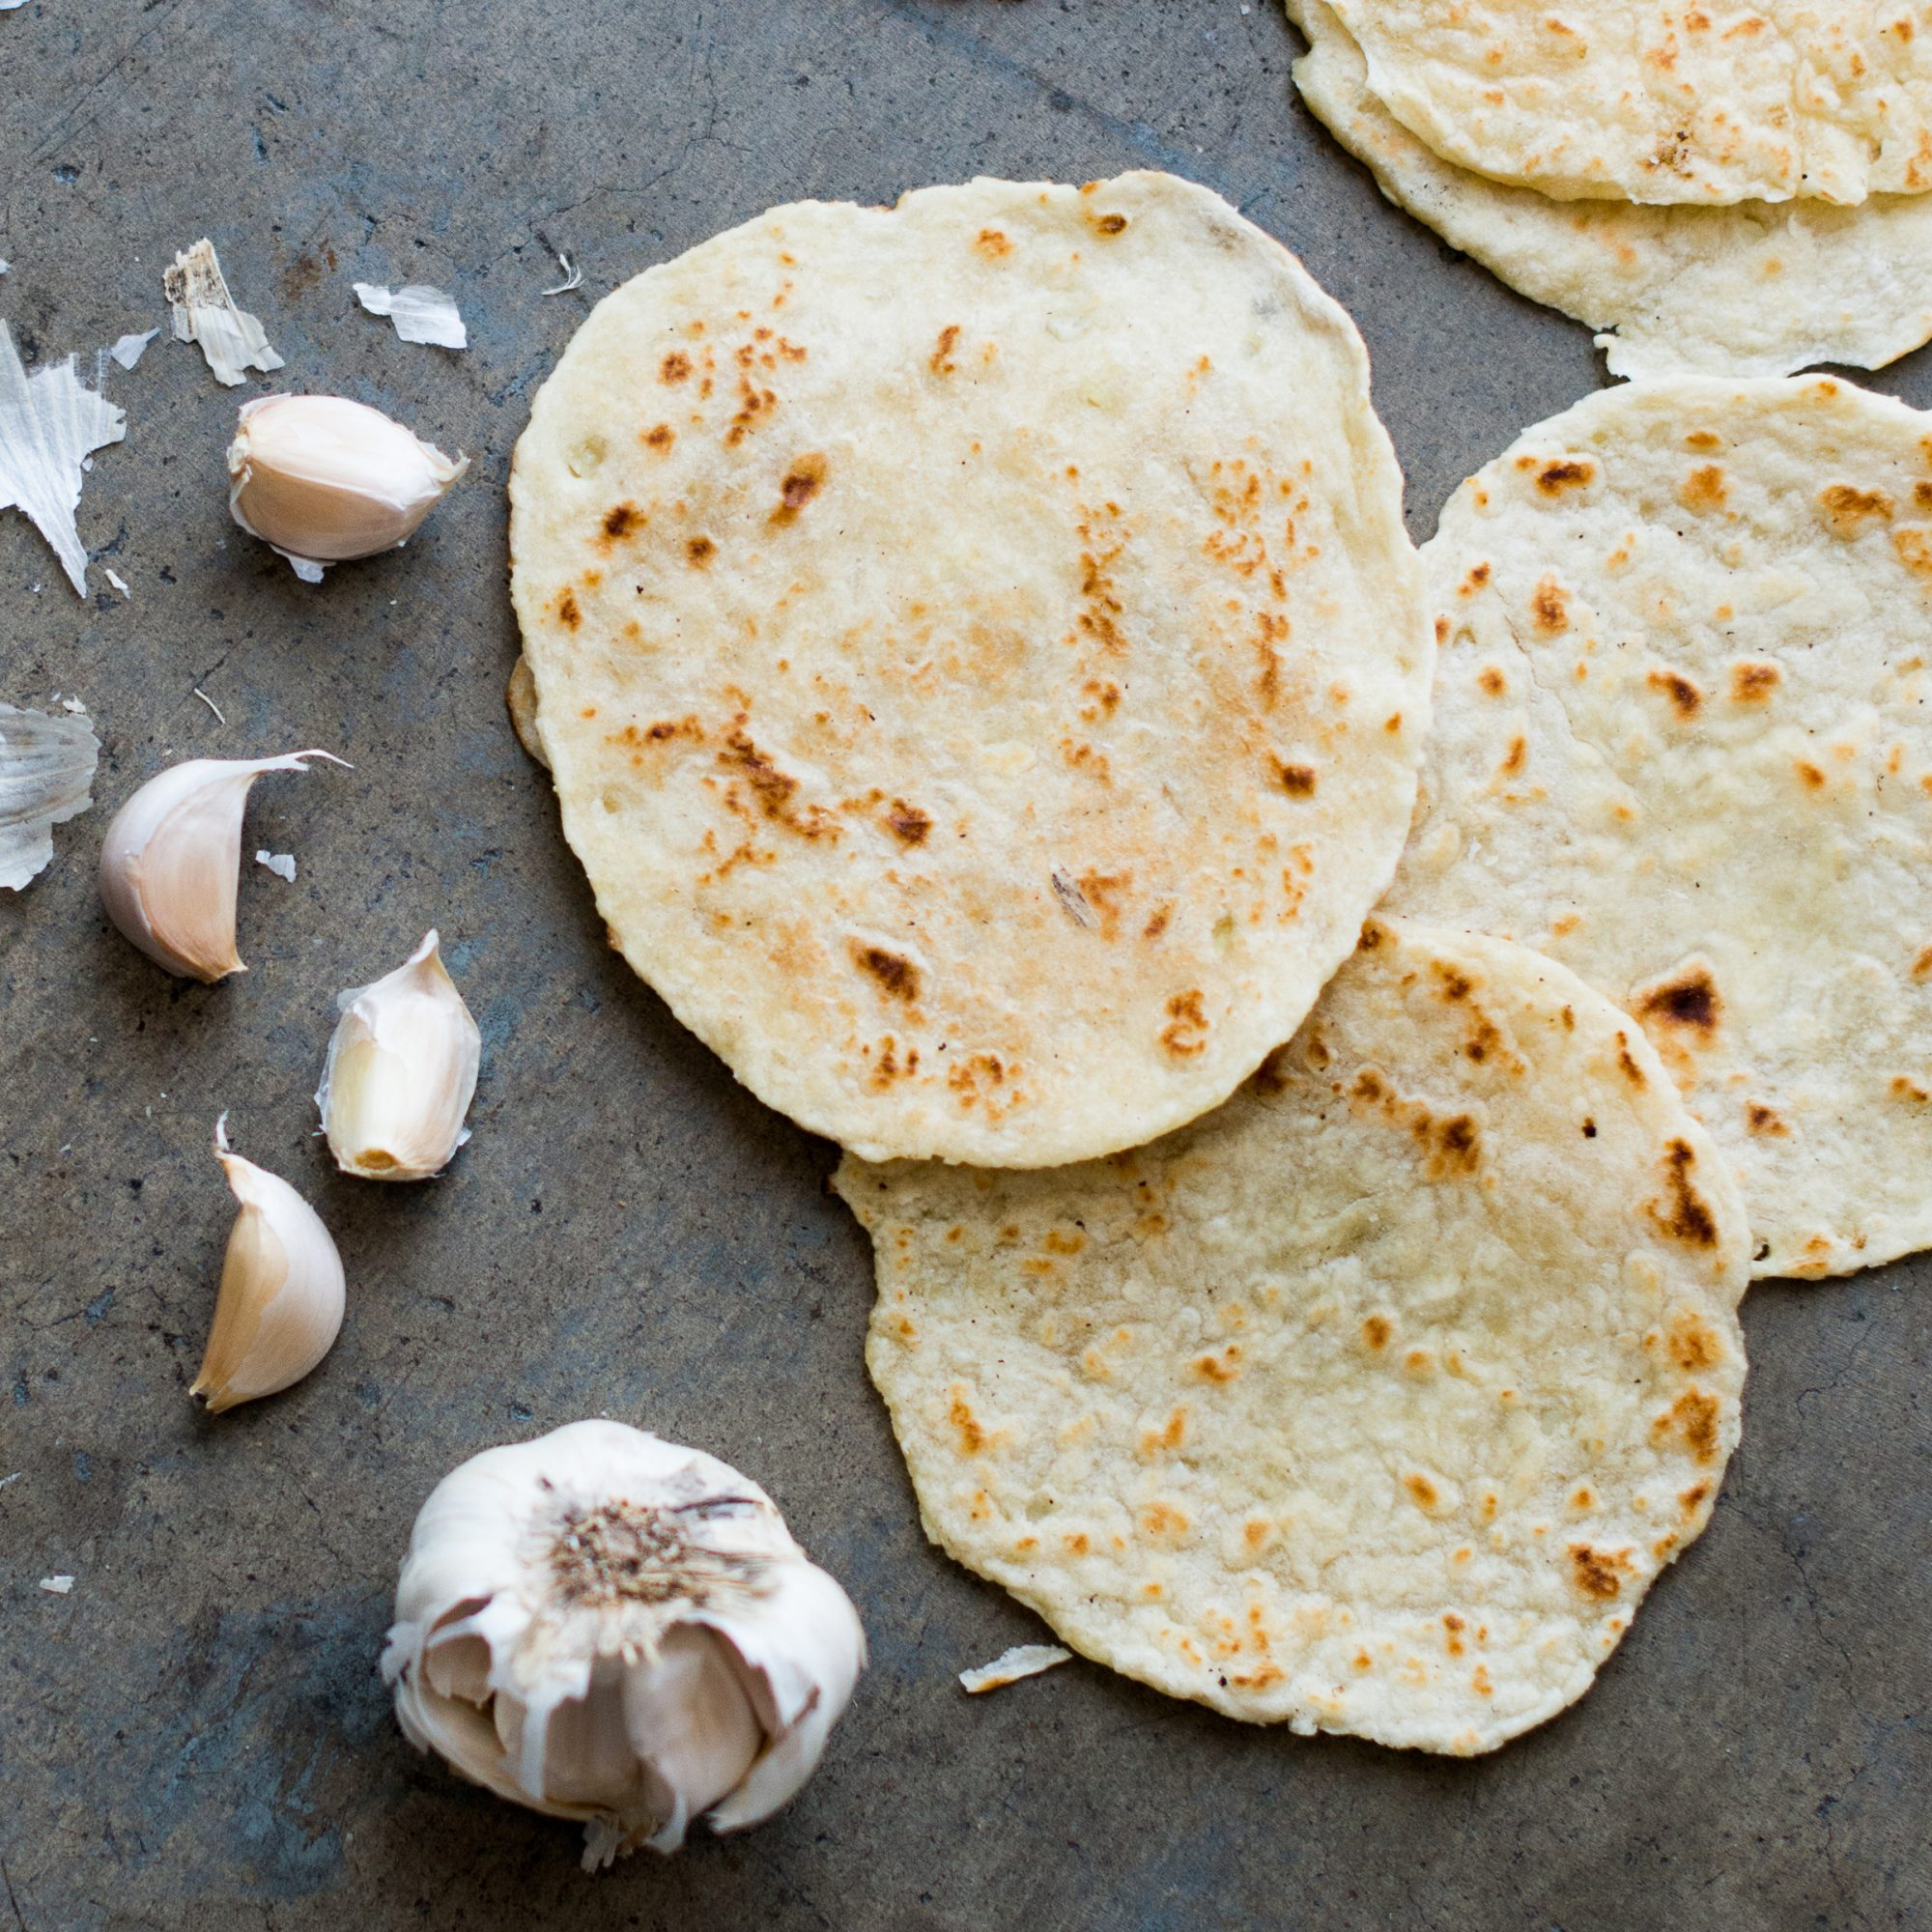 Flour & Garlic Tortillas